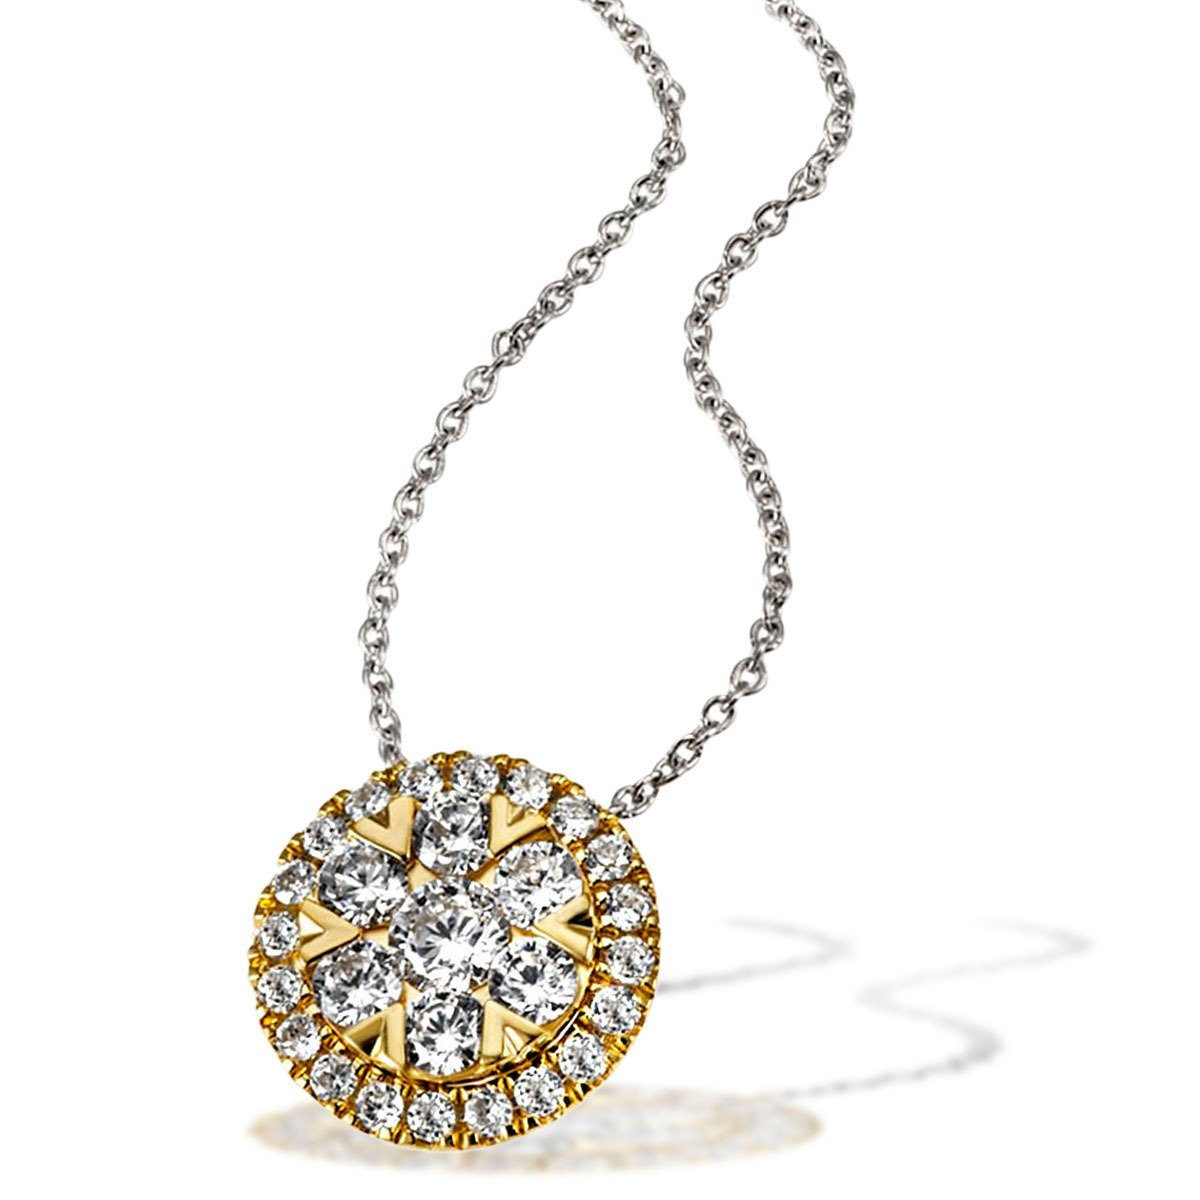 goldmaid Collier 585/- Gelbgold 27 Brillanten 0,49 ct. P2/H